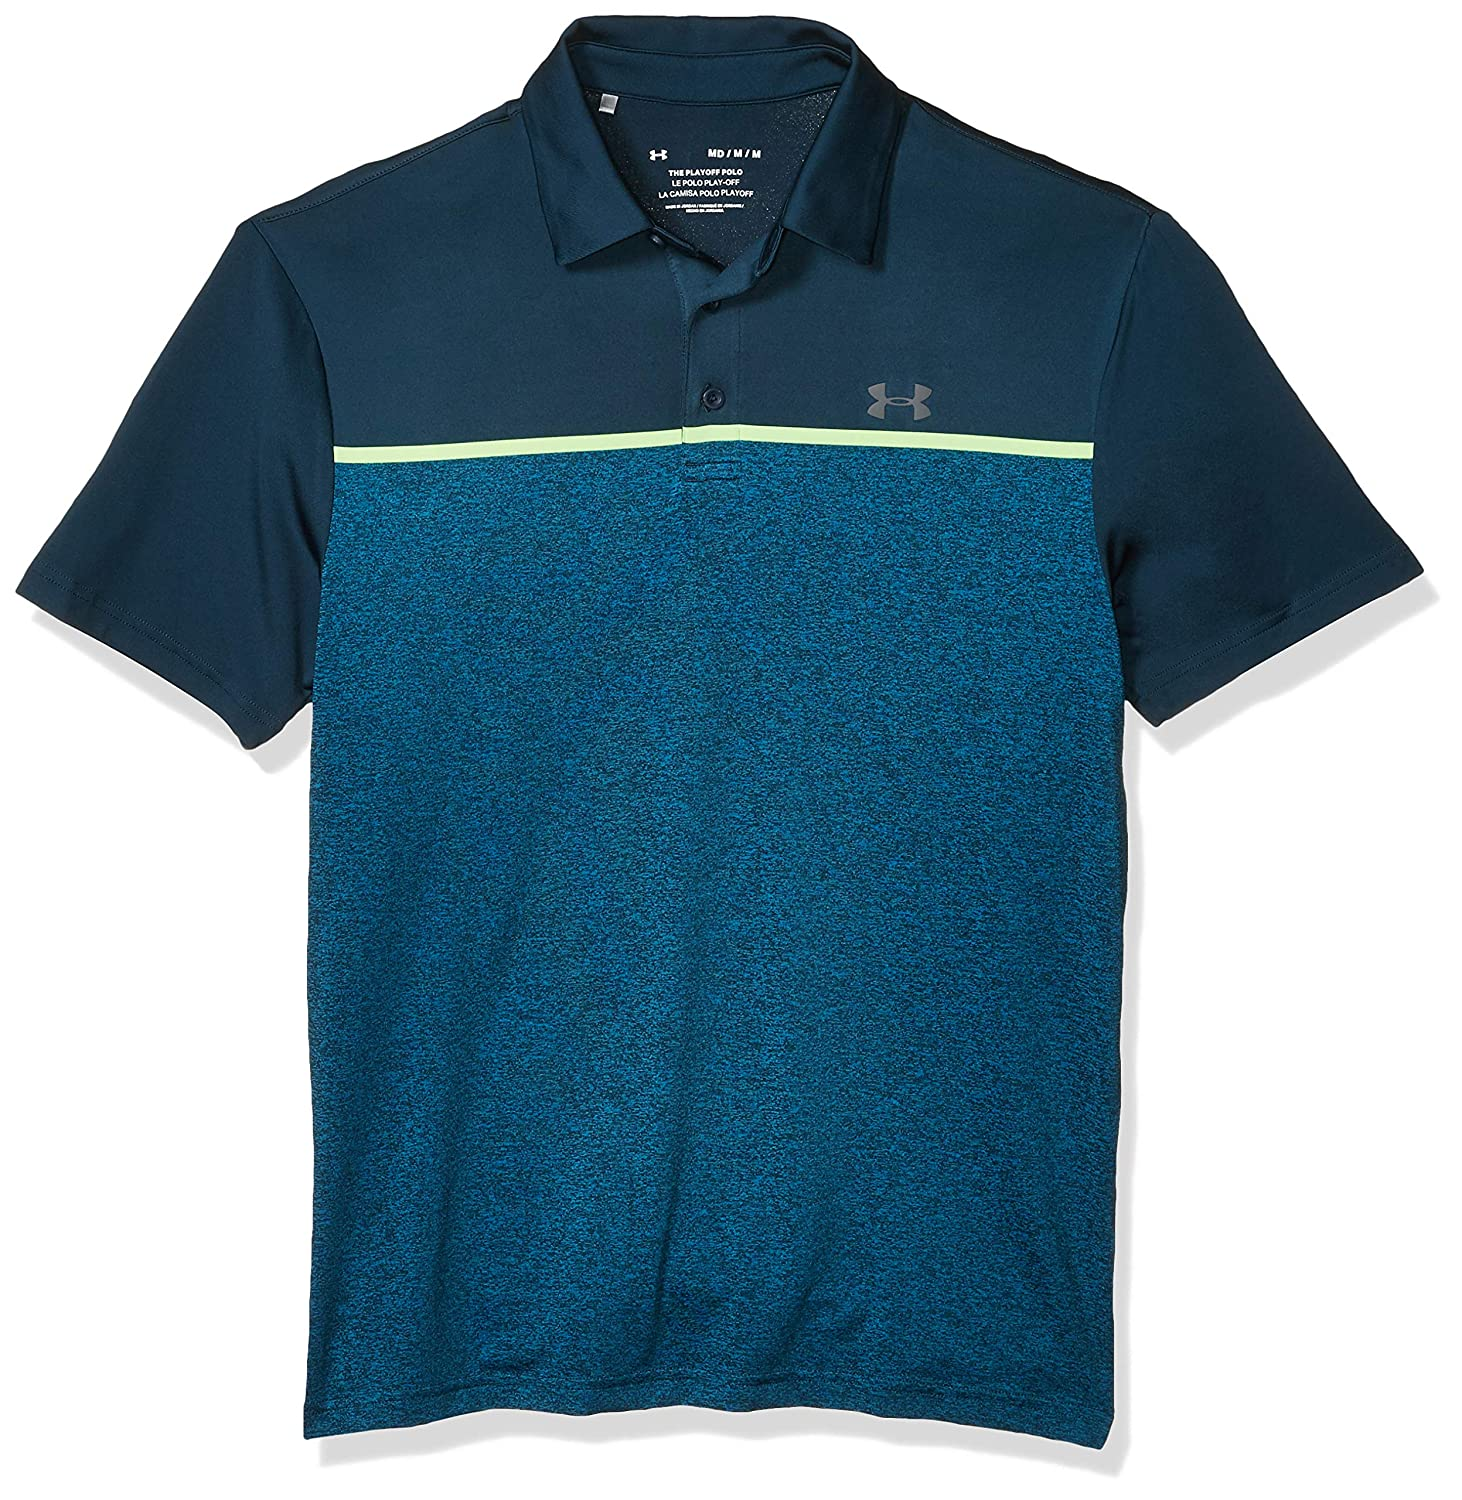 Under Armour Playoff Polo 2.0, Hombre: Amazon.es: Deportes y aire ...